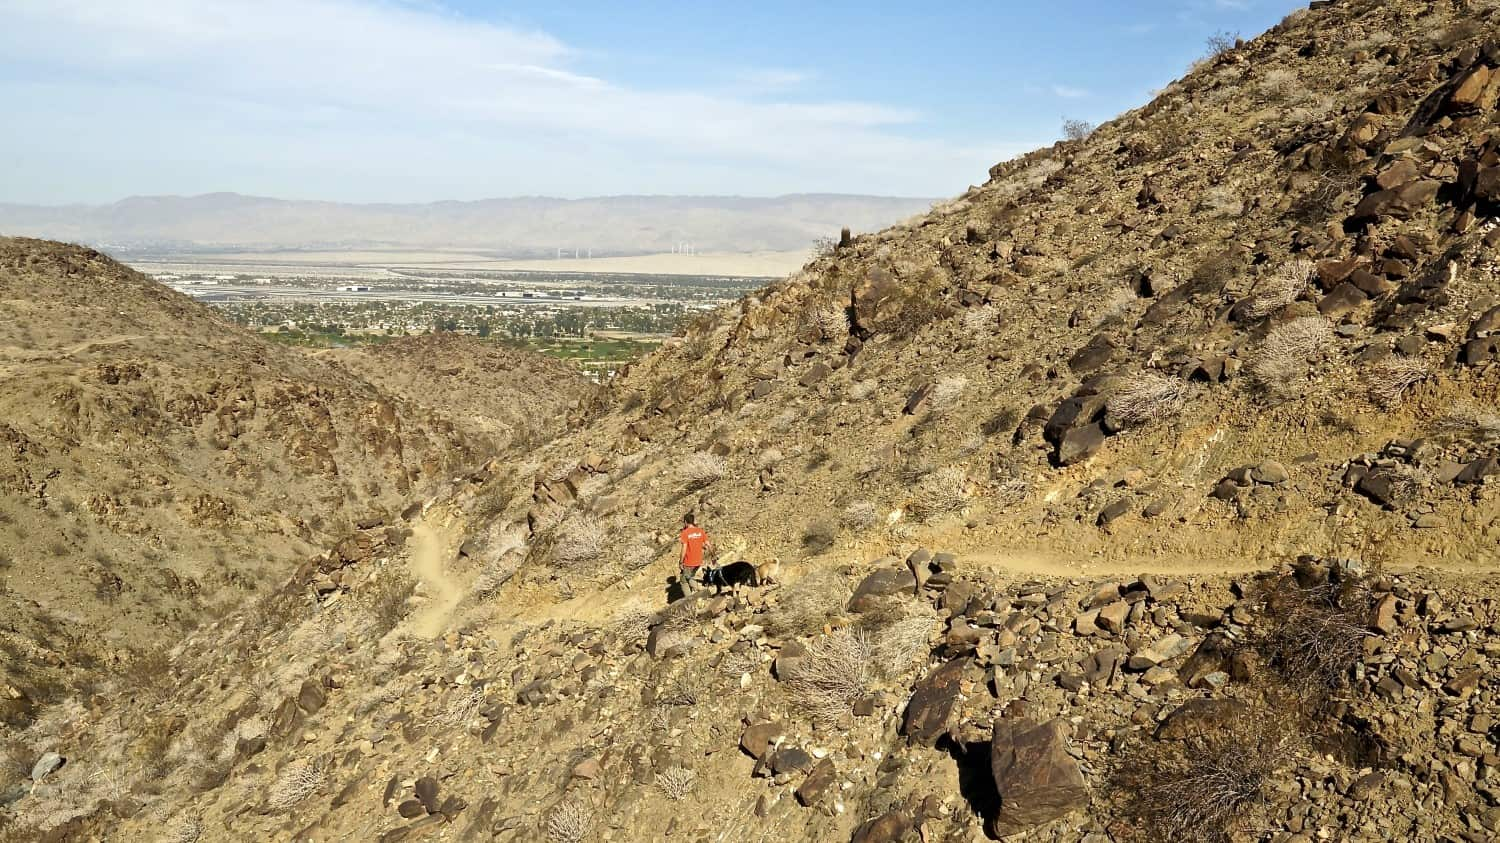 Man and dogs on the pet-friendly Araby Trail in Palm Springs, CA